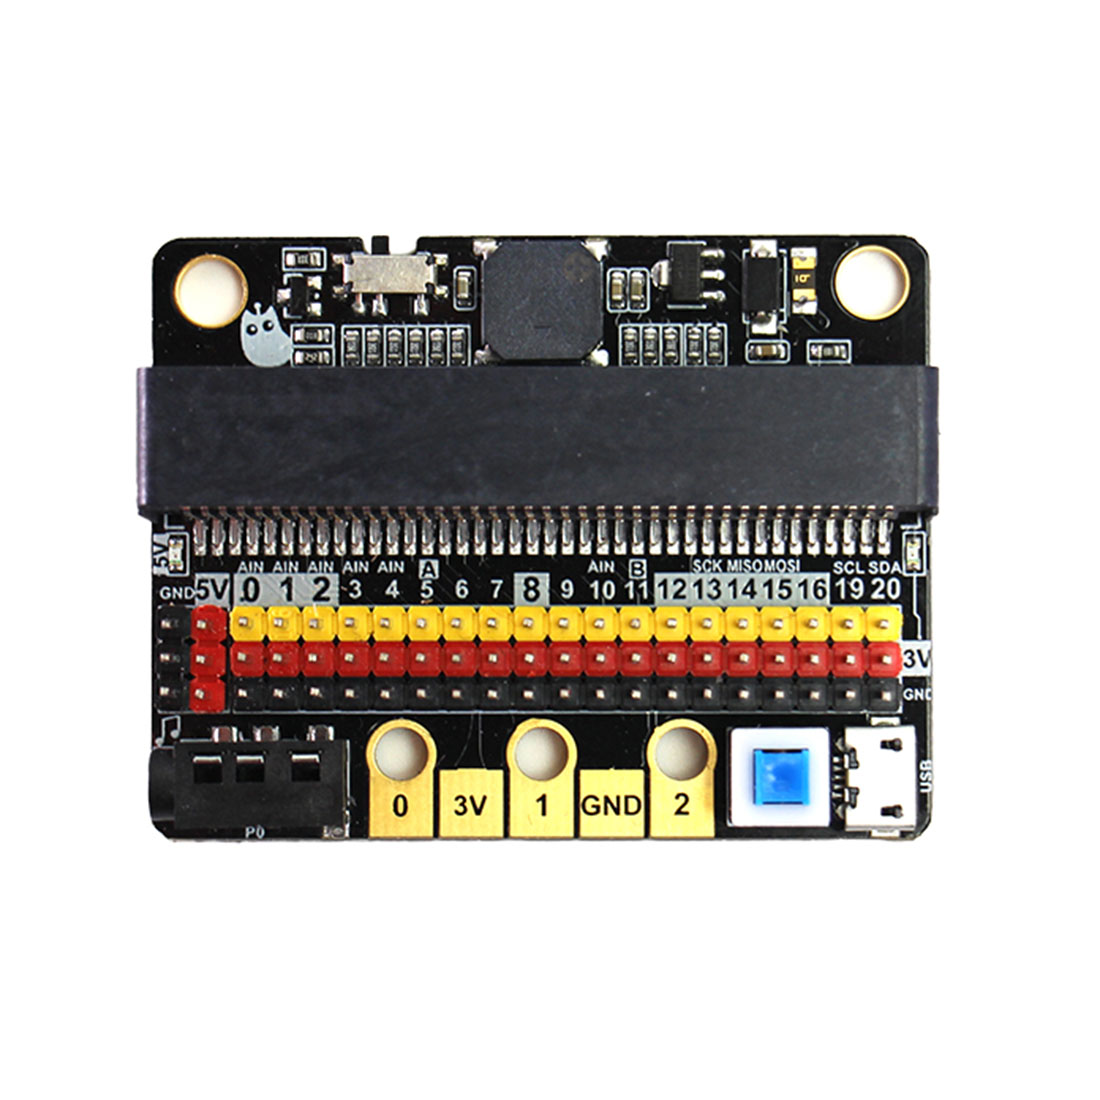 Microbit IOBIT V1.0 V2.0 Development Board Expansion Board STEM Educational Toy Accessories Drop Shipping